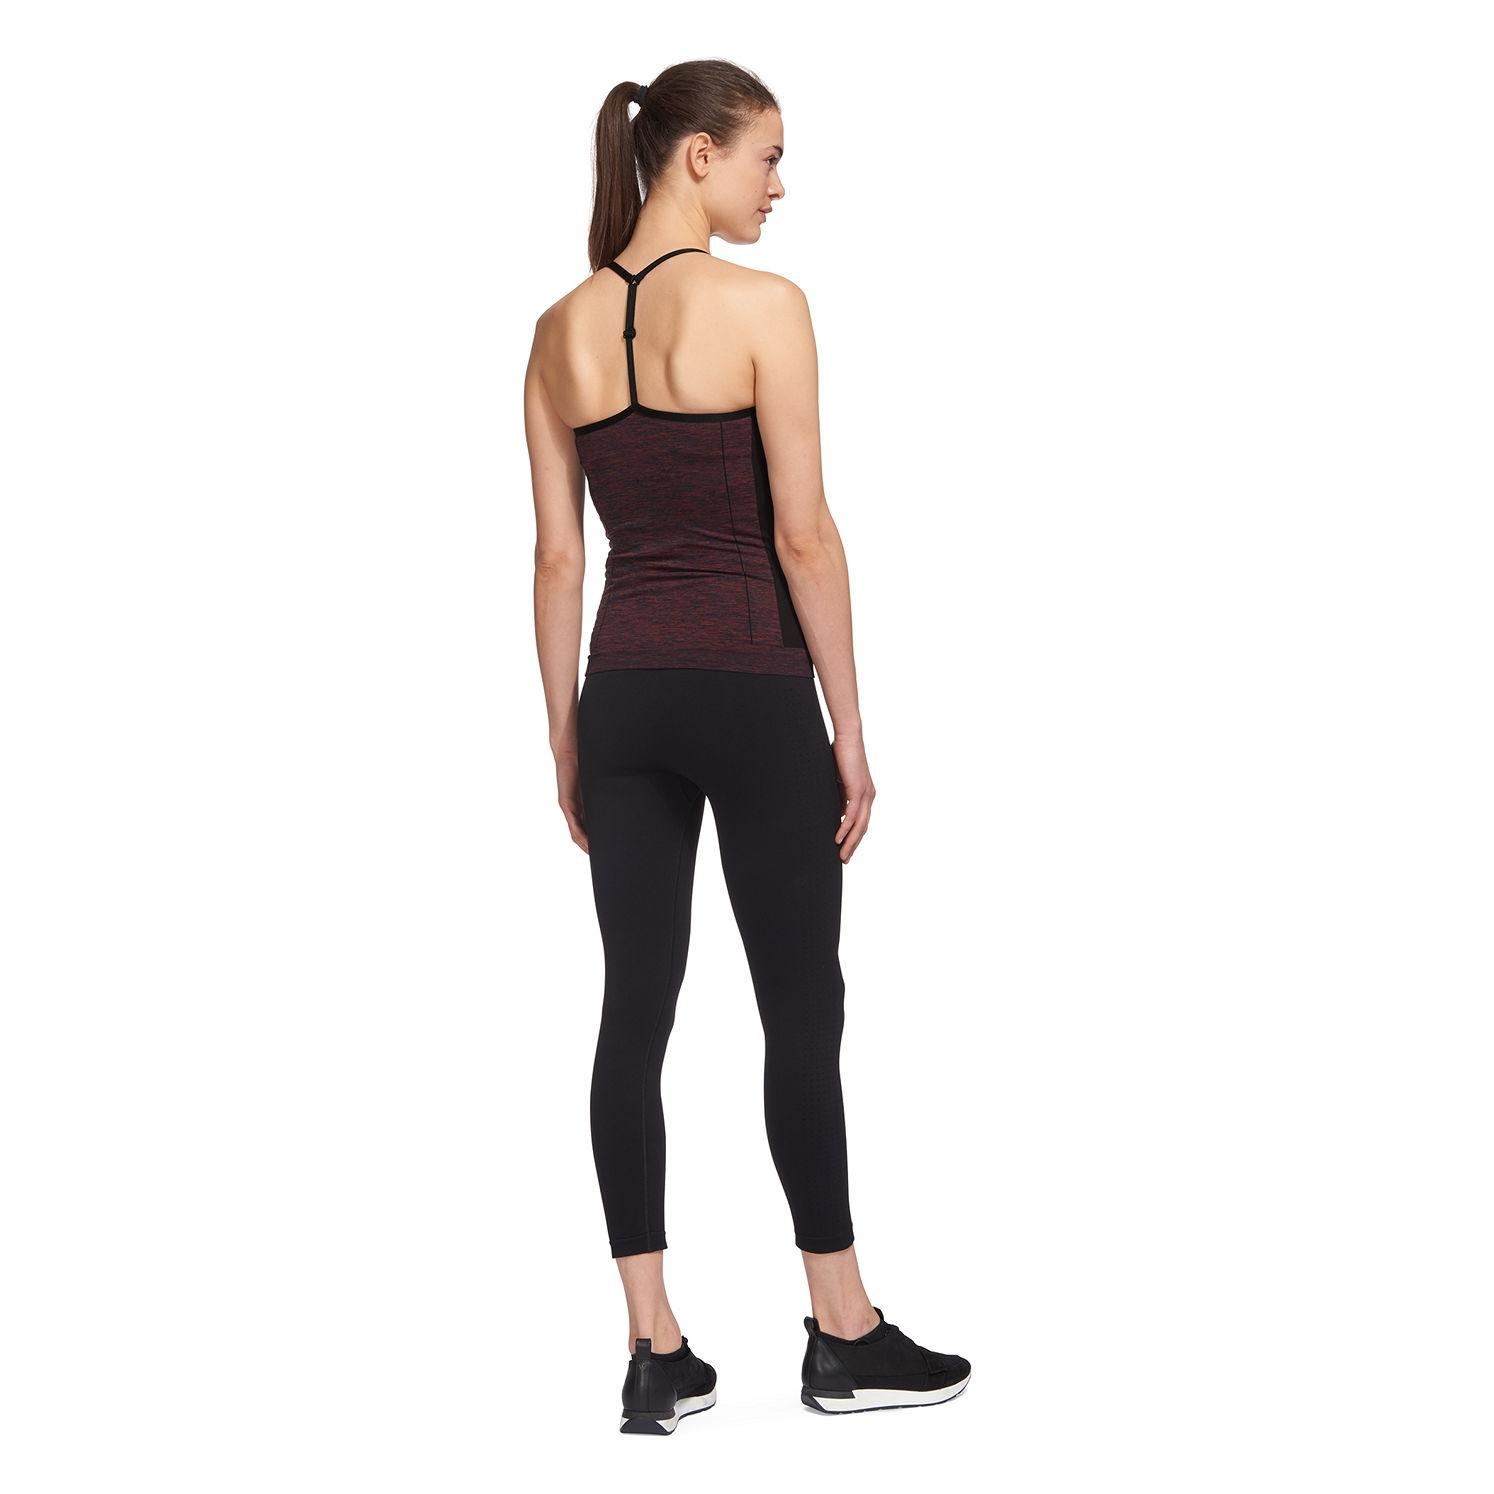 Whistles Synthetic Longline Sports Top in Red